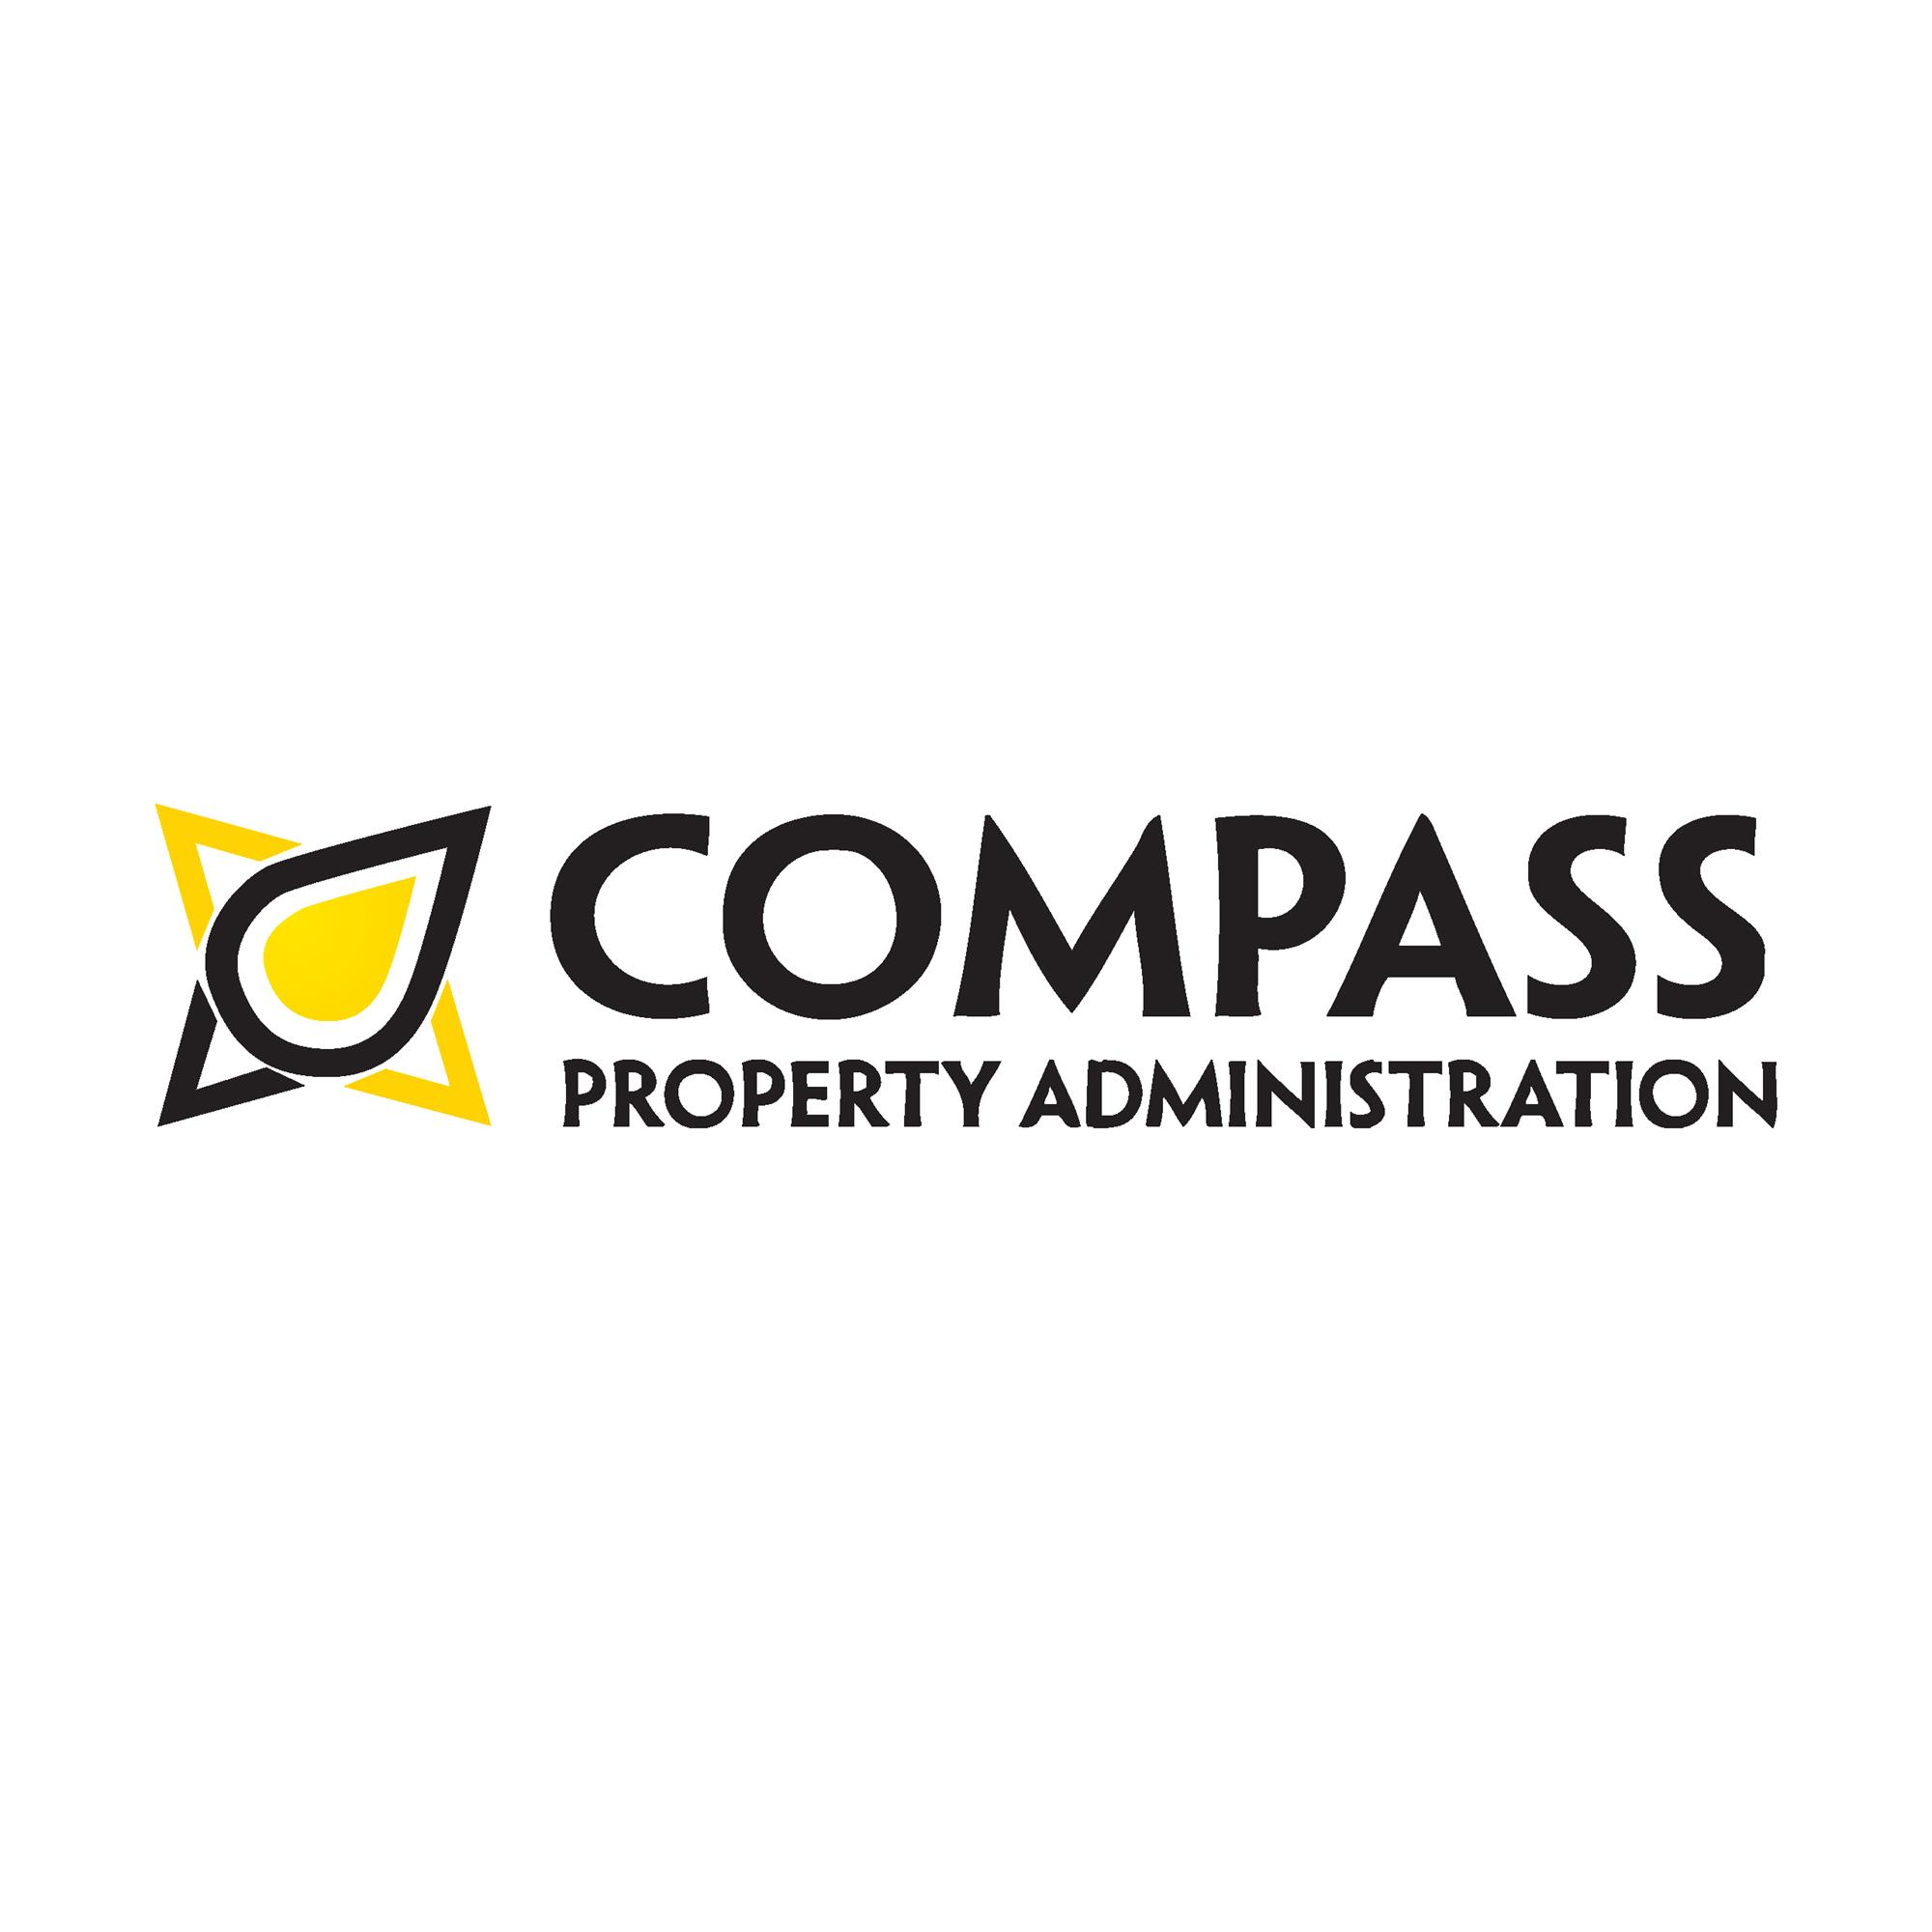 Compass Property Administration - Property Management